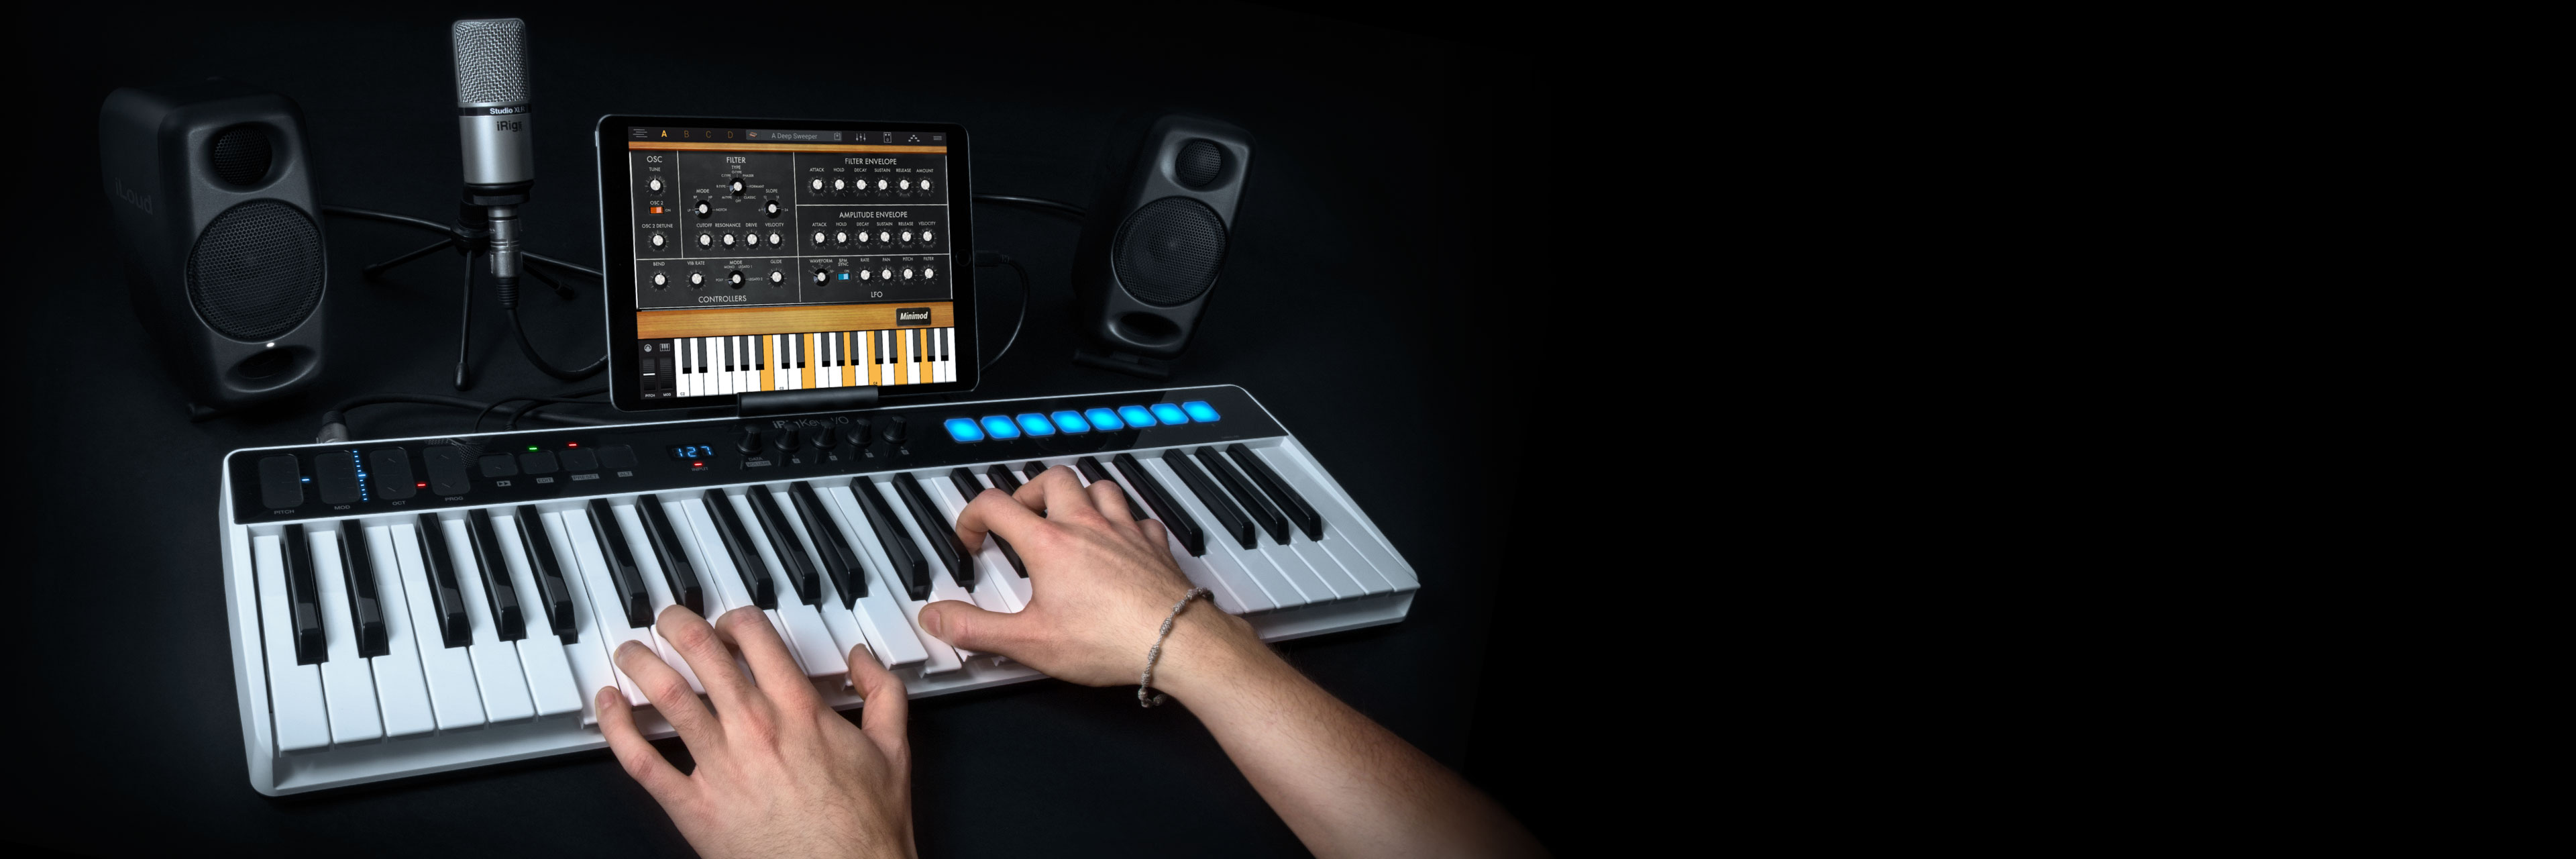 Ik Multimedia Irig Keys I O Raspberry Pi Singapore Low Level Control Startup Guide The All In One Music Production Station That Goes Anywhere You Want